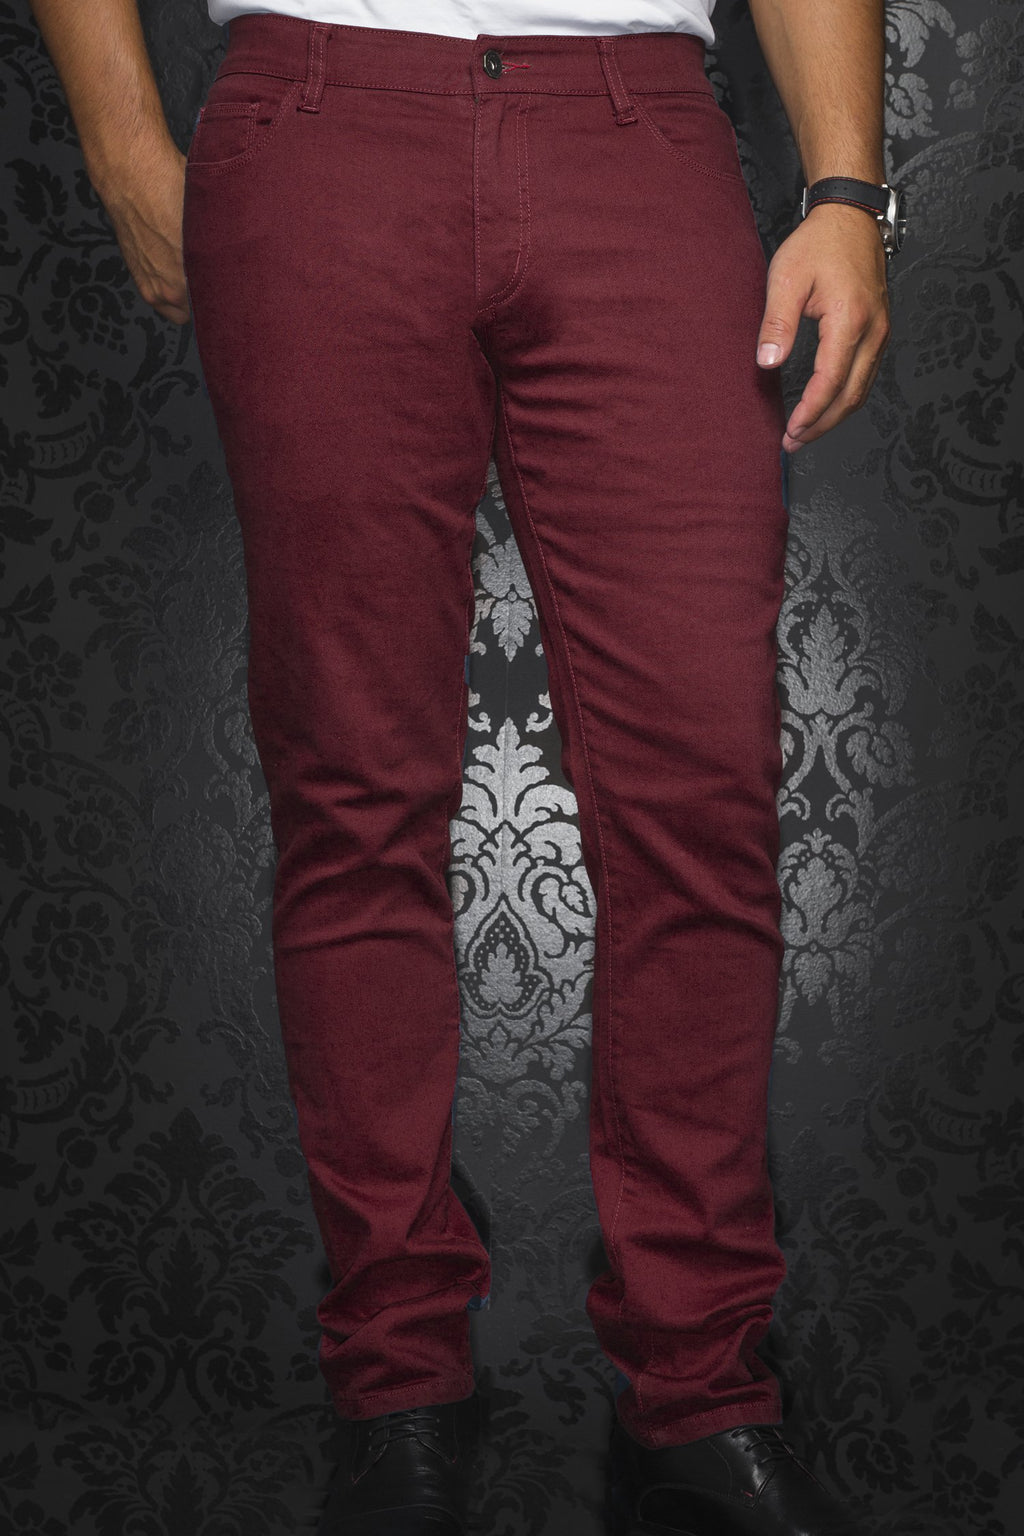 Au Noir Slim Fit Stretch Denim Jean - Burgundy